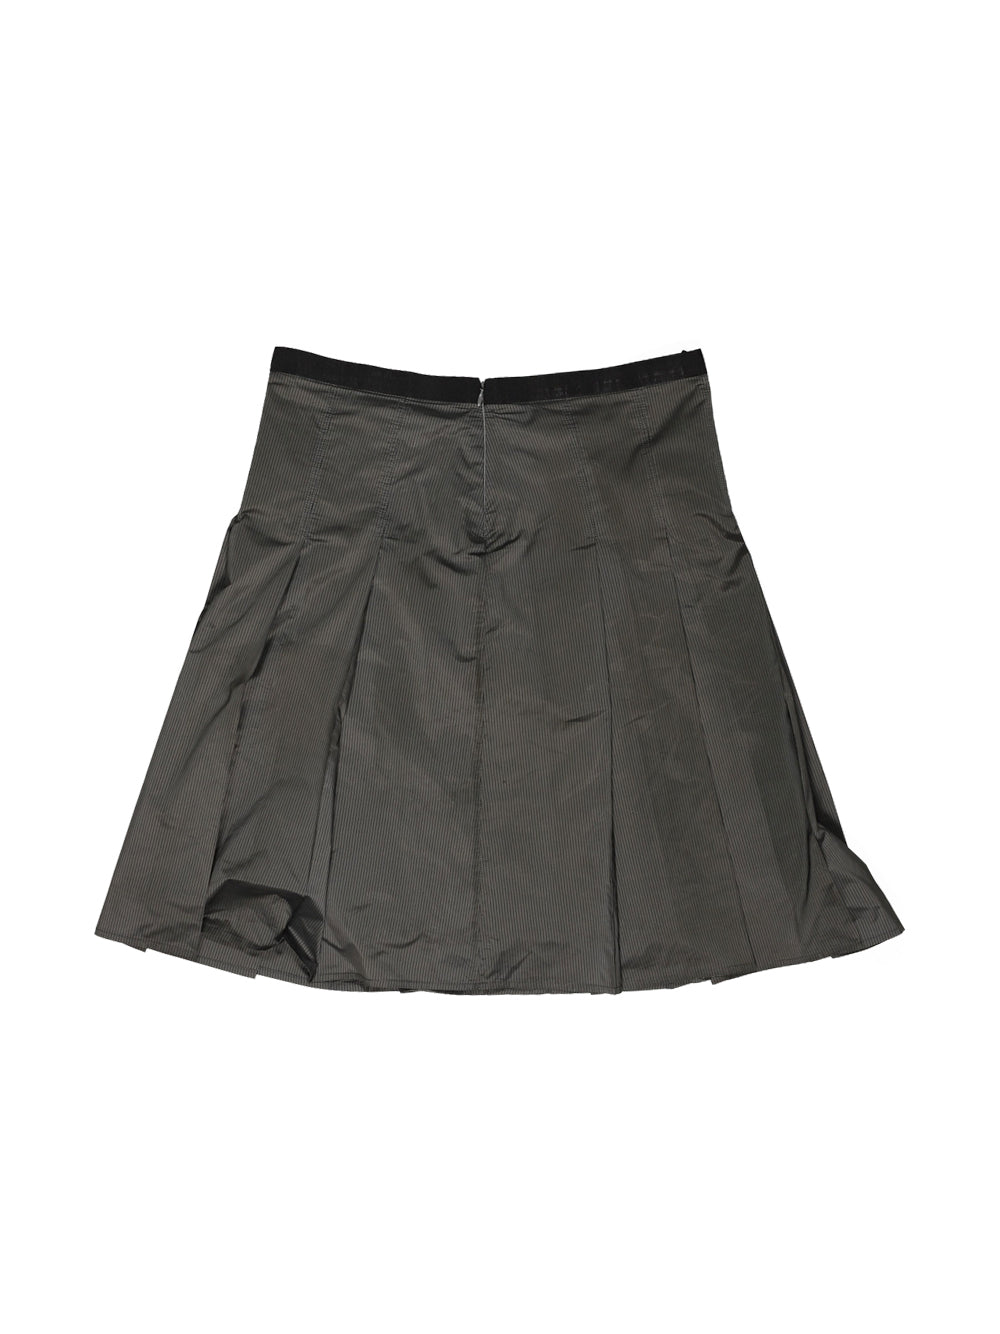 Front photo of Preloved Massimo Dutti Grey Woman's skirt - size 10/M